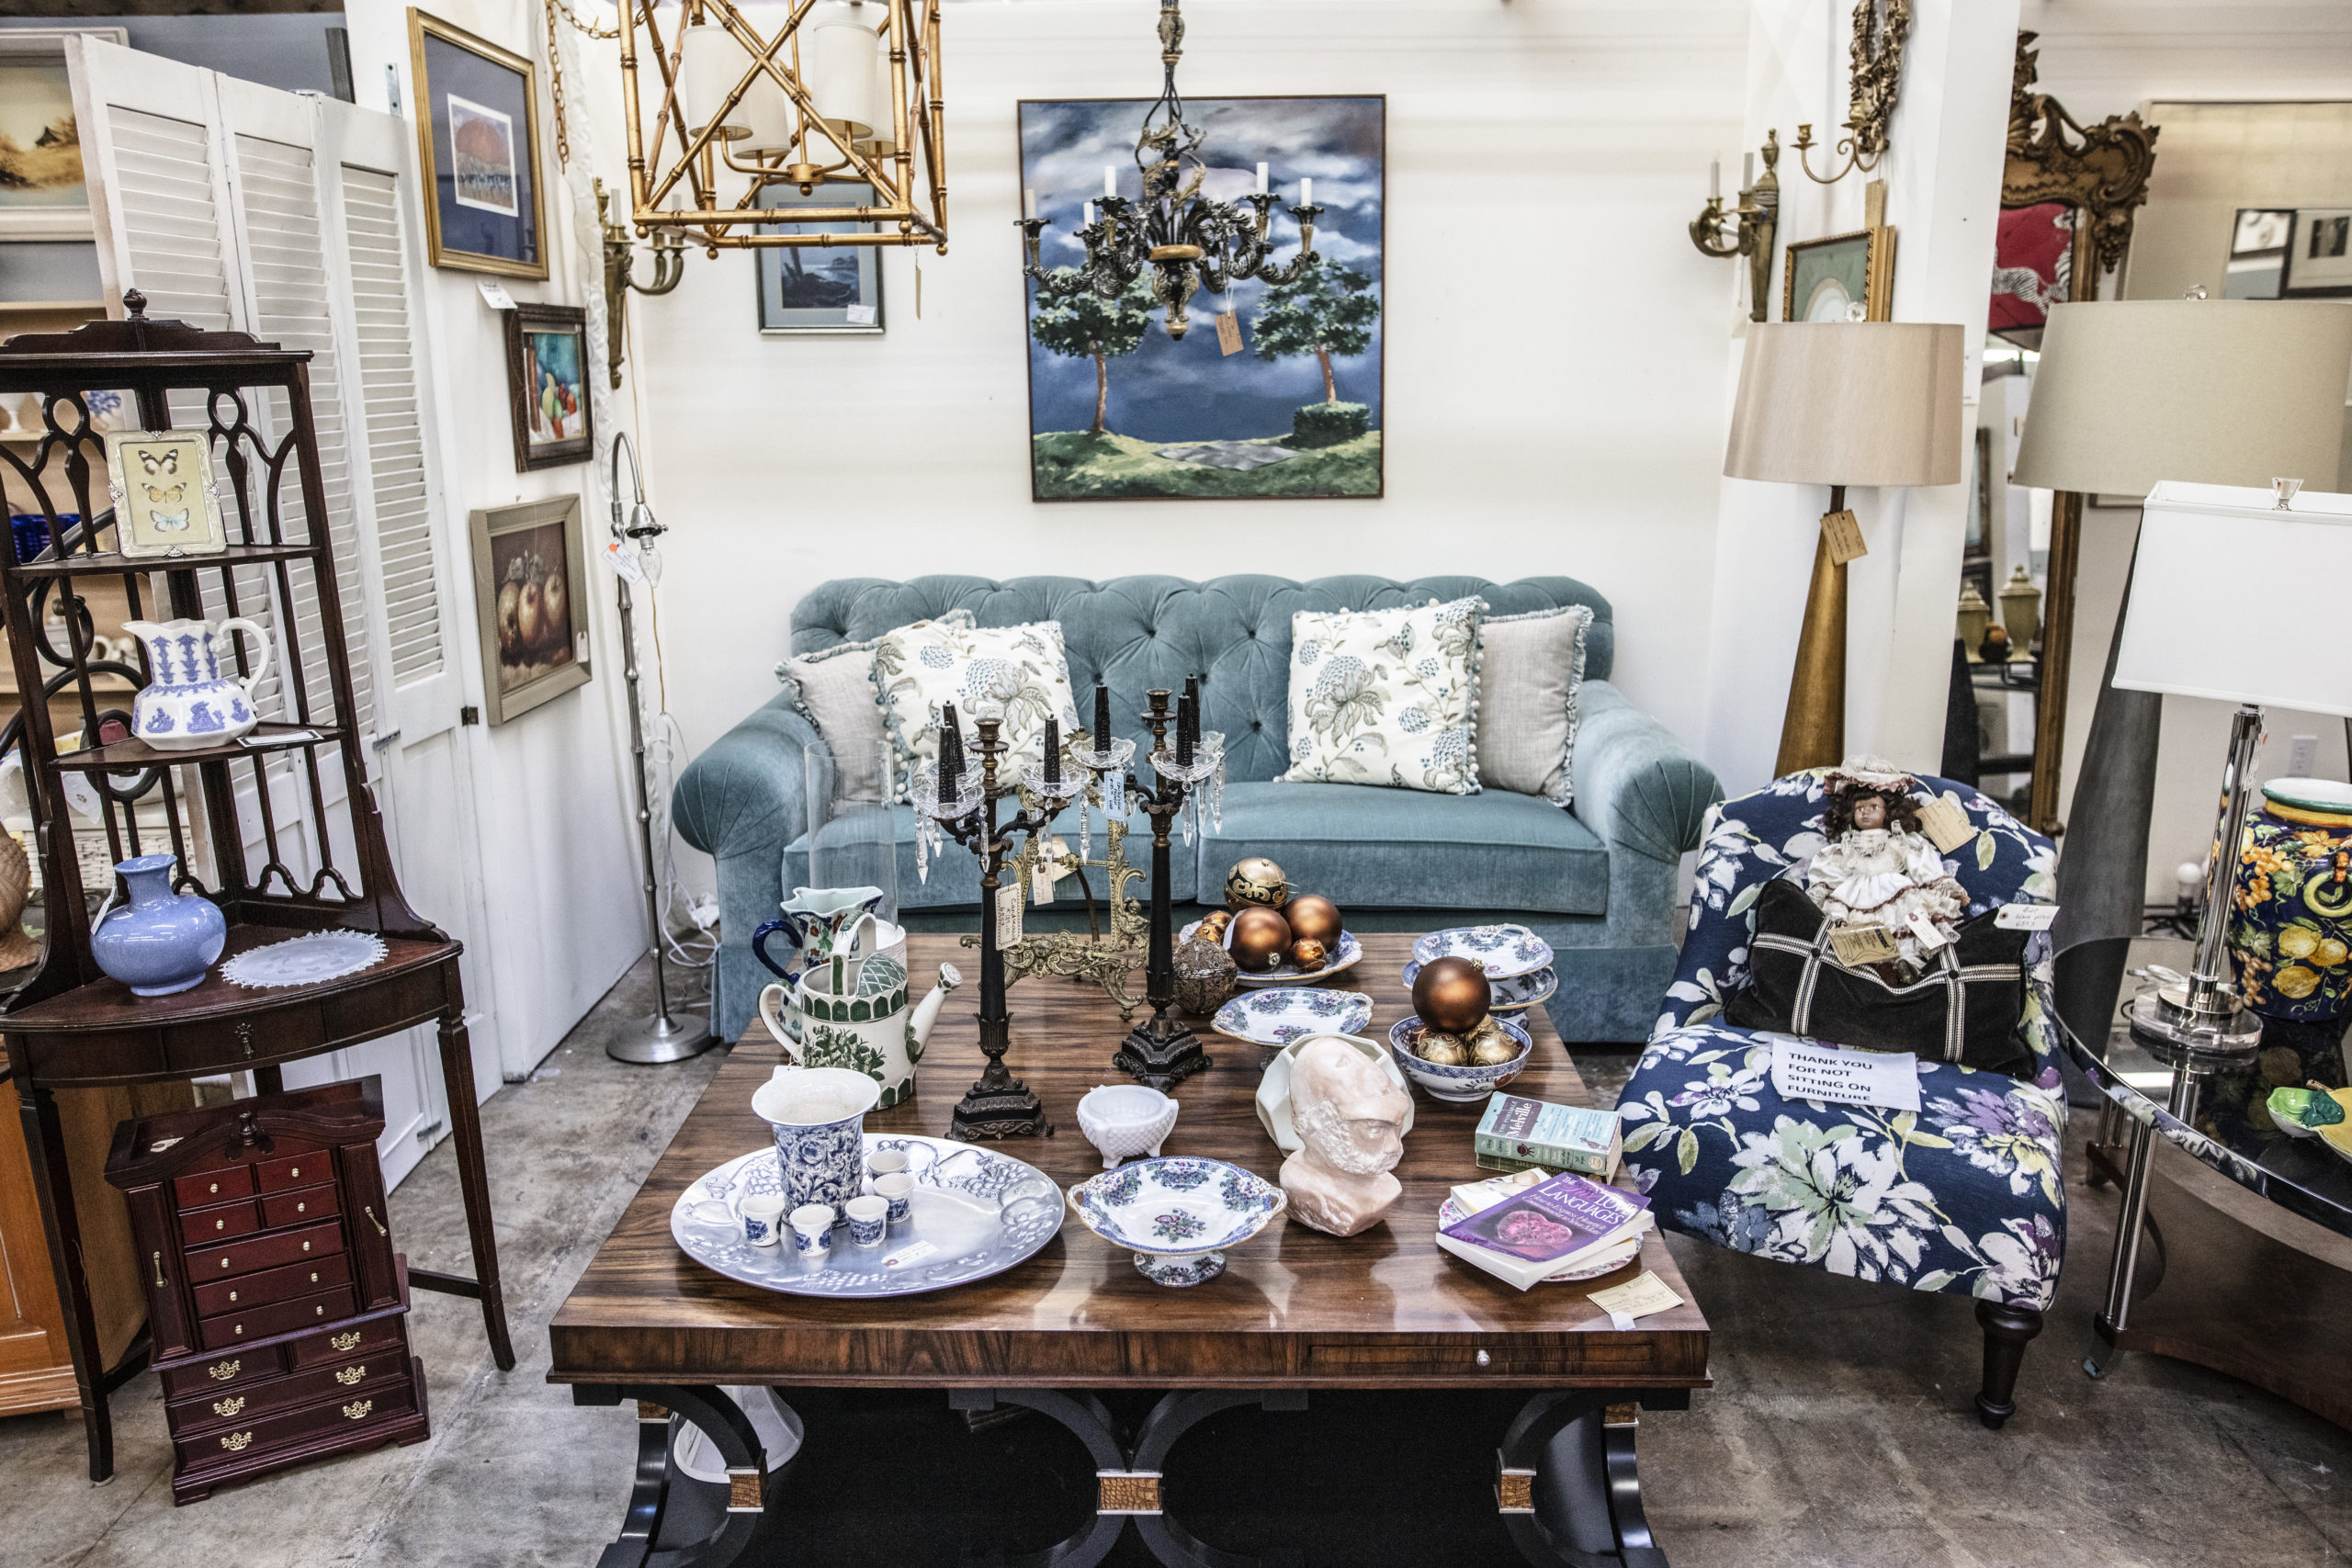 The Ultimate Antique Shopping Guide for Modern Millennials